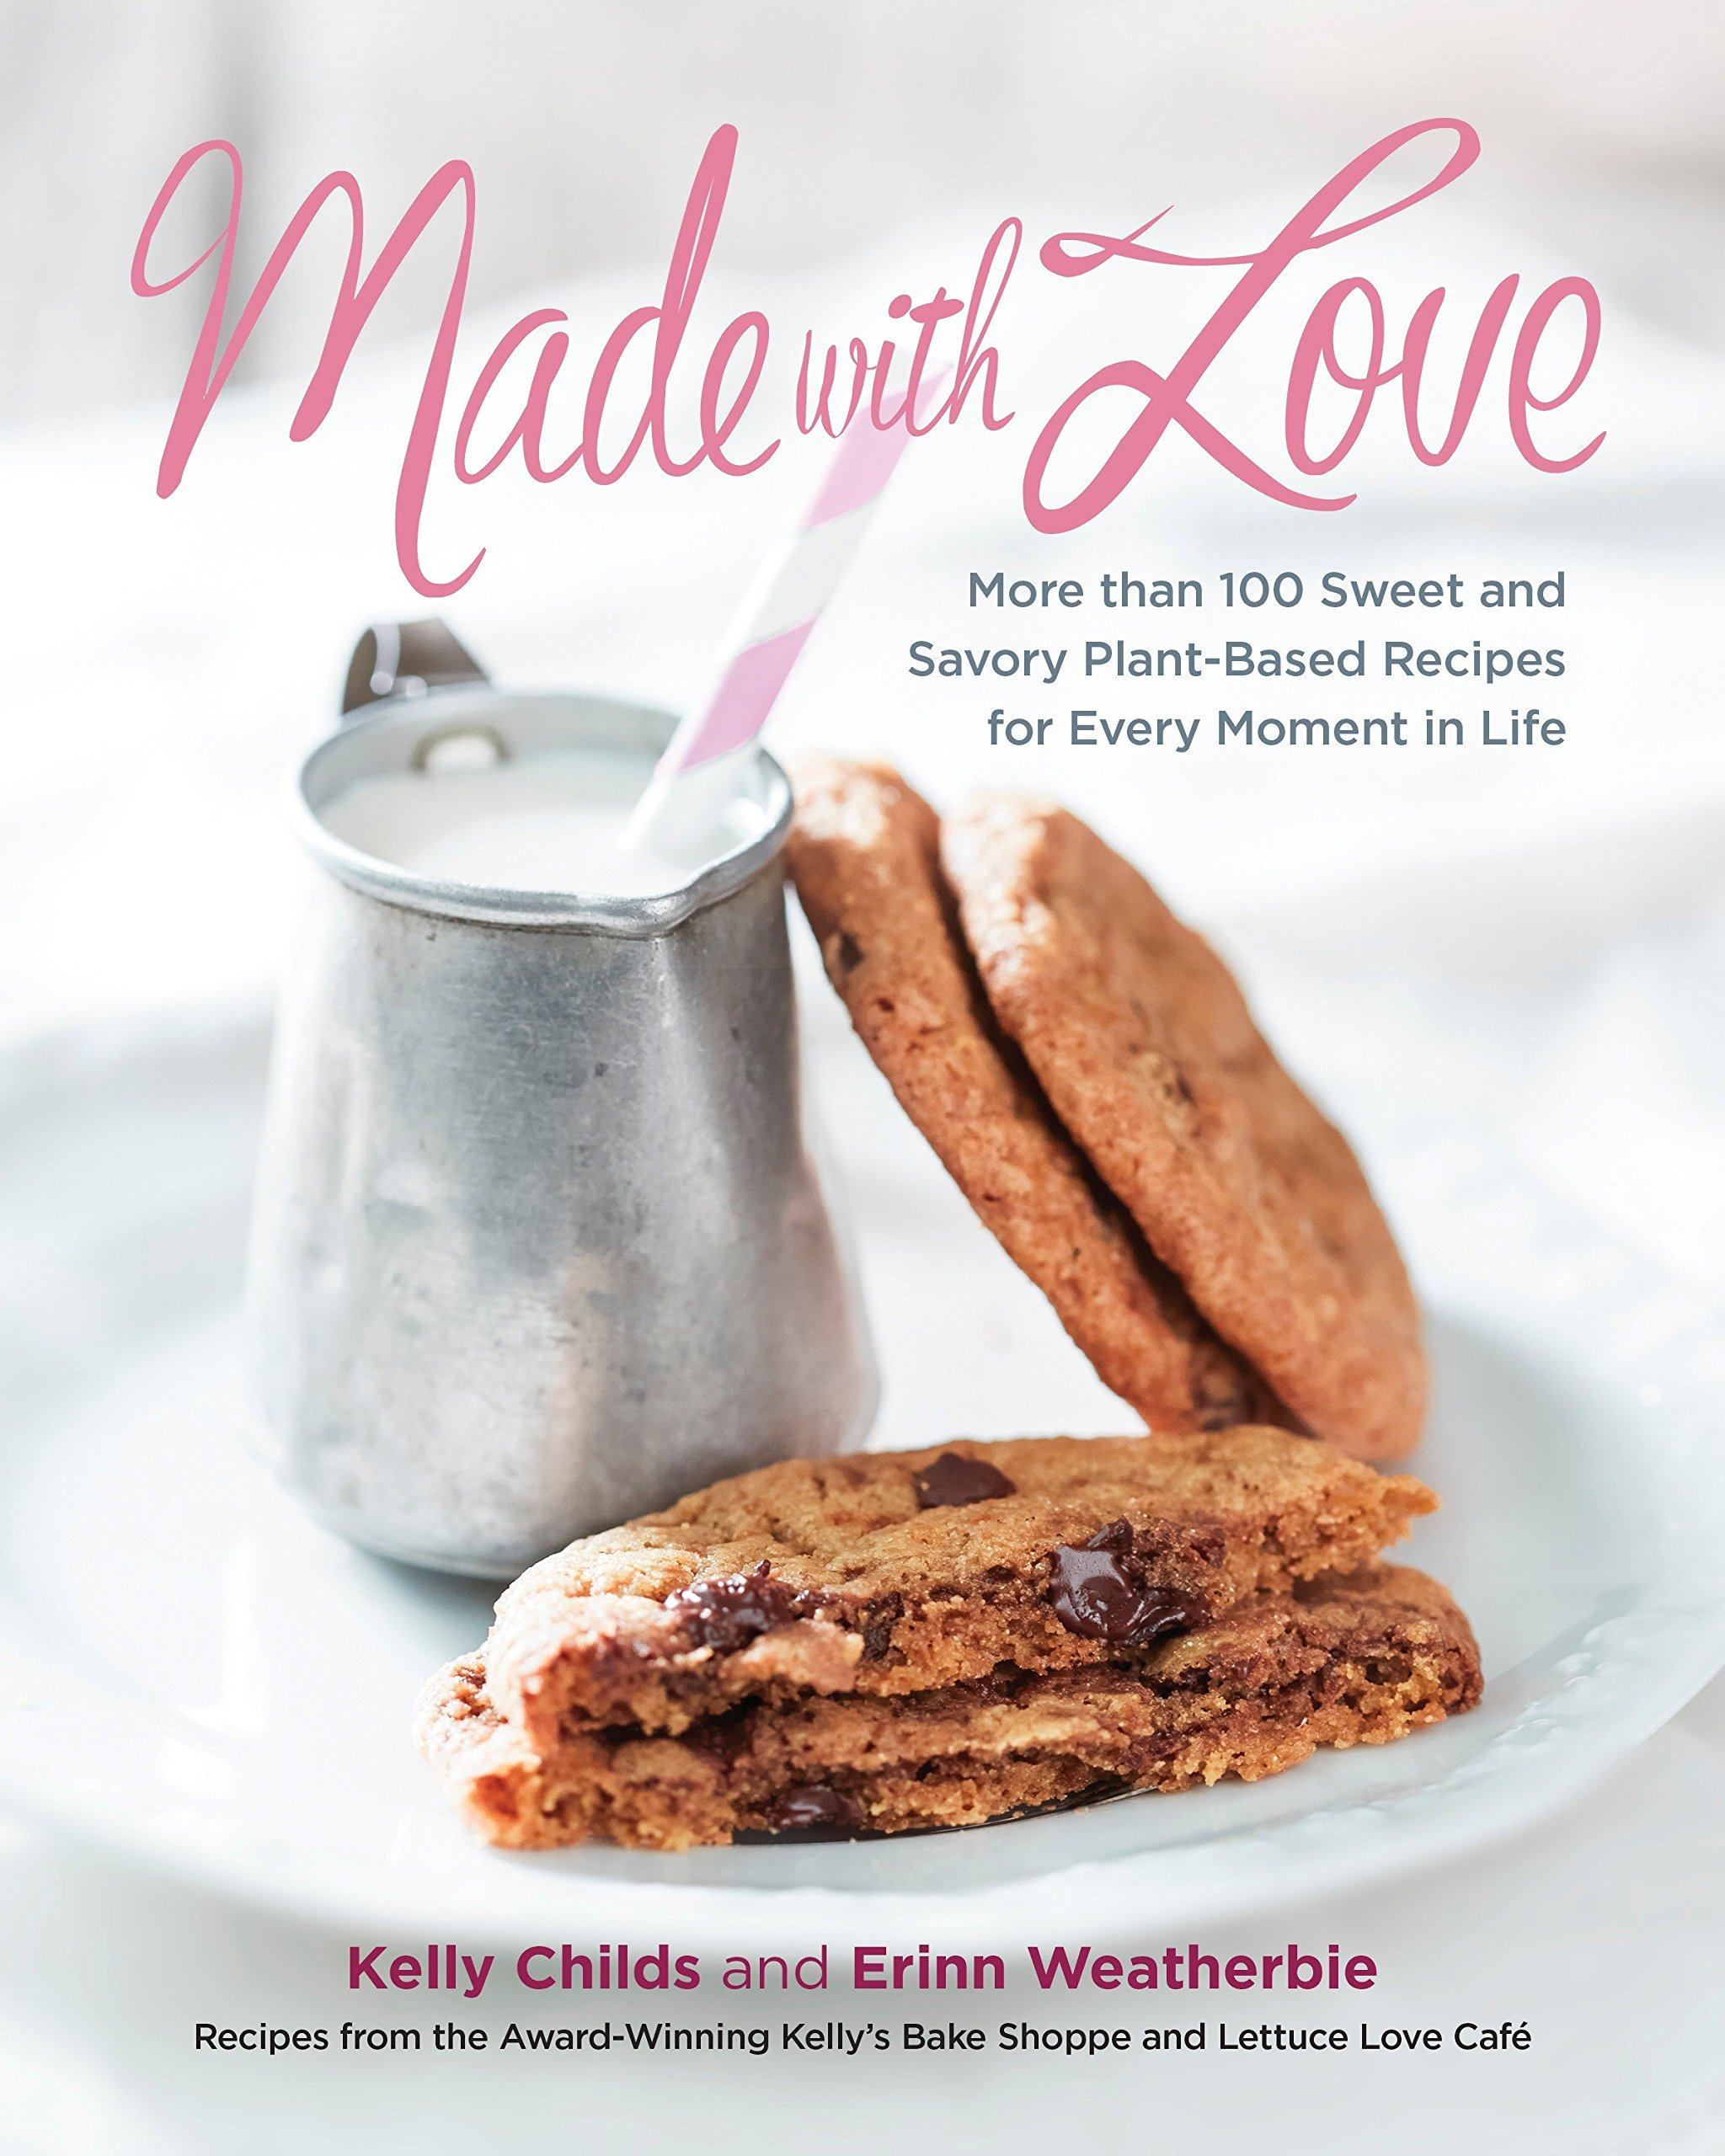 Made With Love More Than 100 Delicious Gluten Free Plant Based Arnotts Joyful Package Extra Cheese Recipes For The Sweet And Savory Moments In Life Kelly Childs Erinn Weatherbie